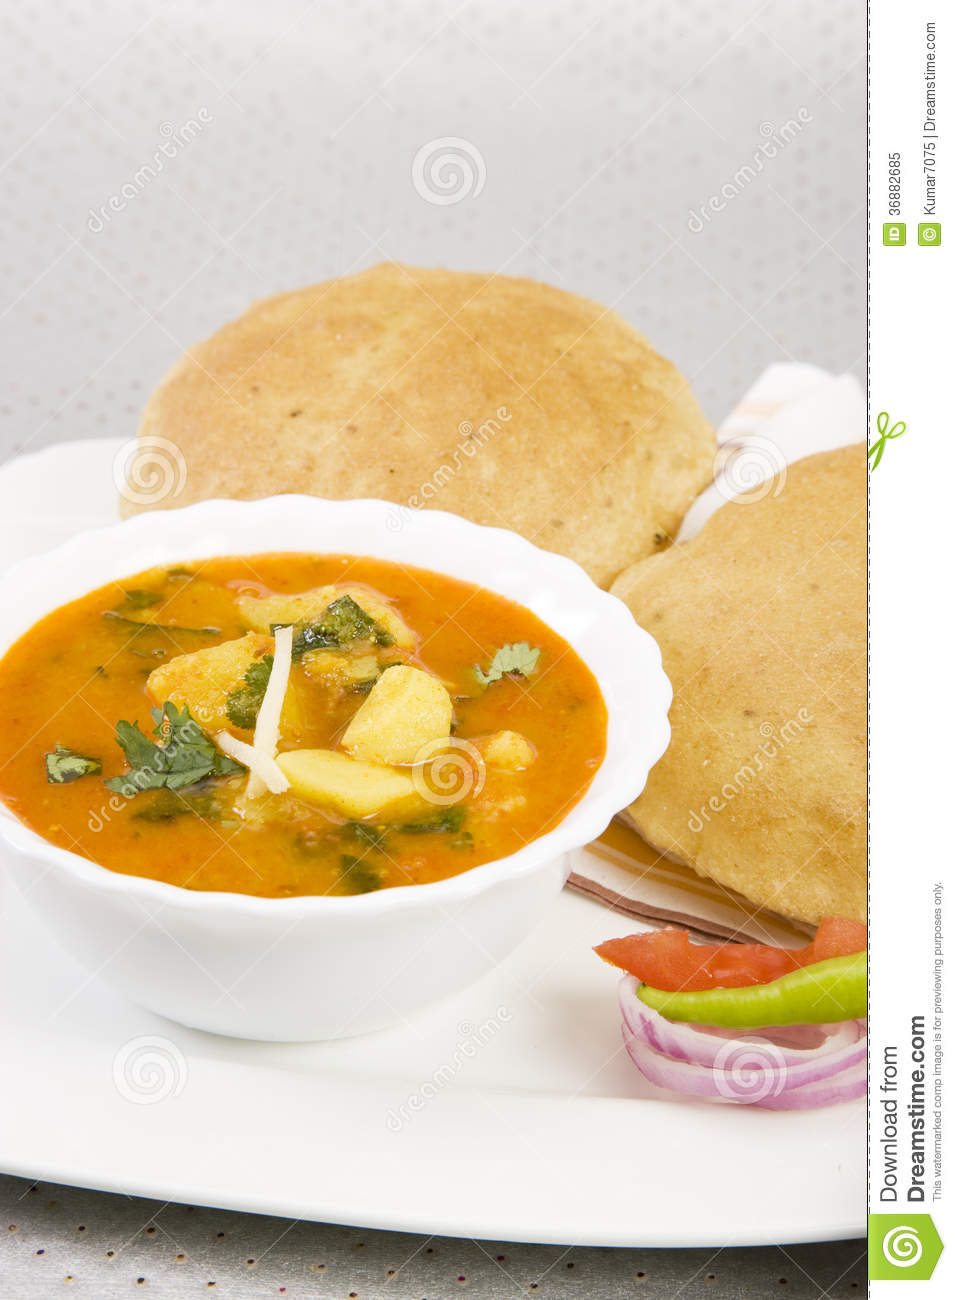 Download Aloo Puri con Aachar immagine stock. Immagine di patata - 36882685